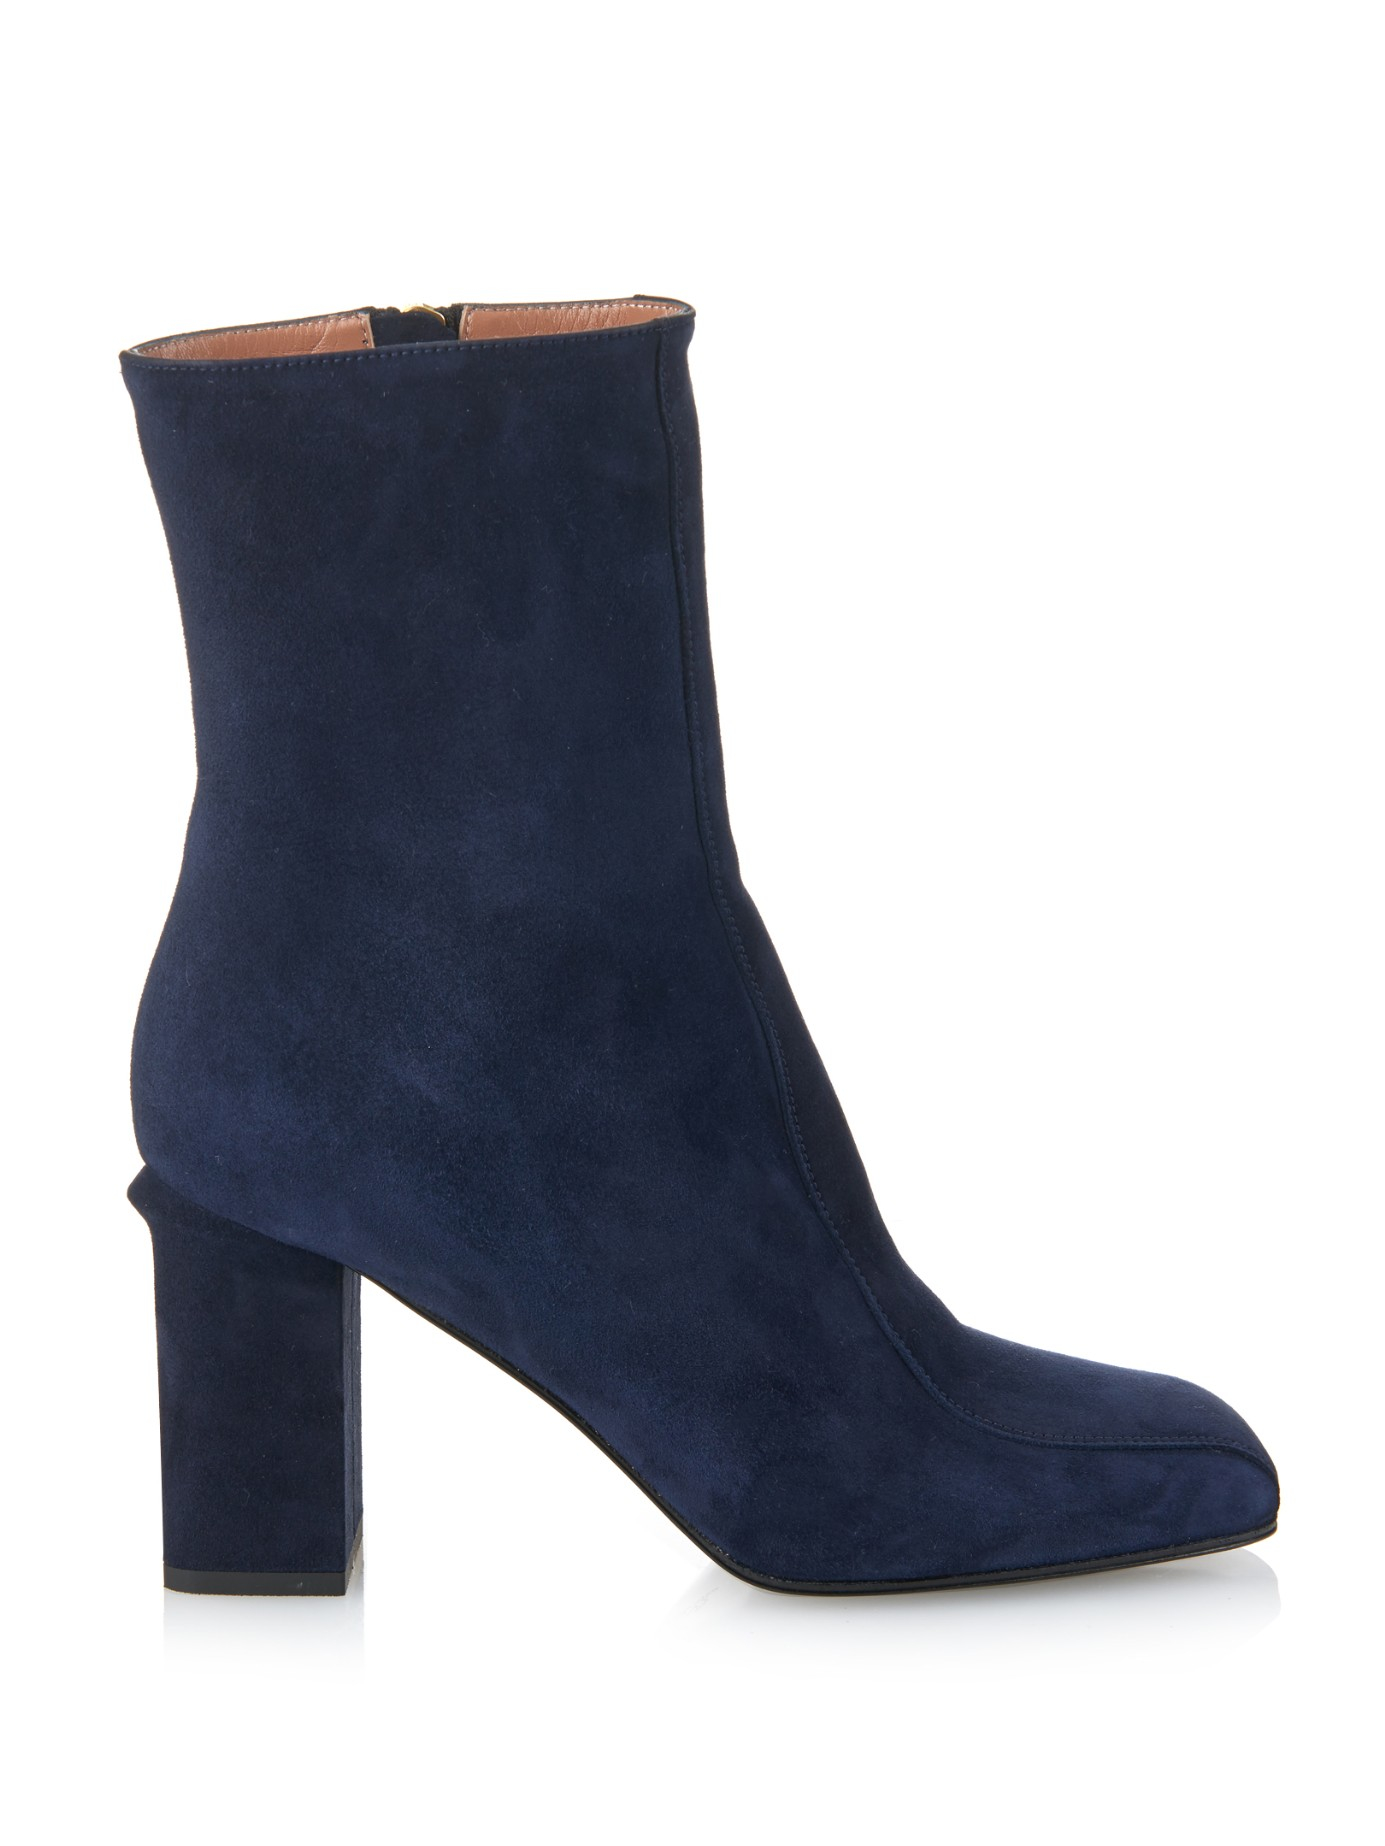 Lyst Marni Square Toe Suede Ankle Boots In Blue